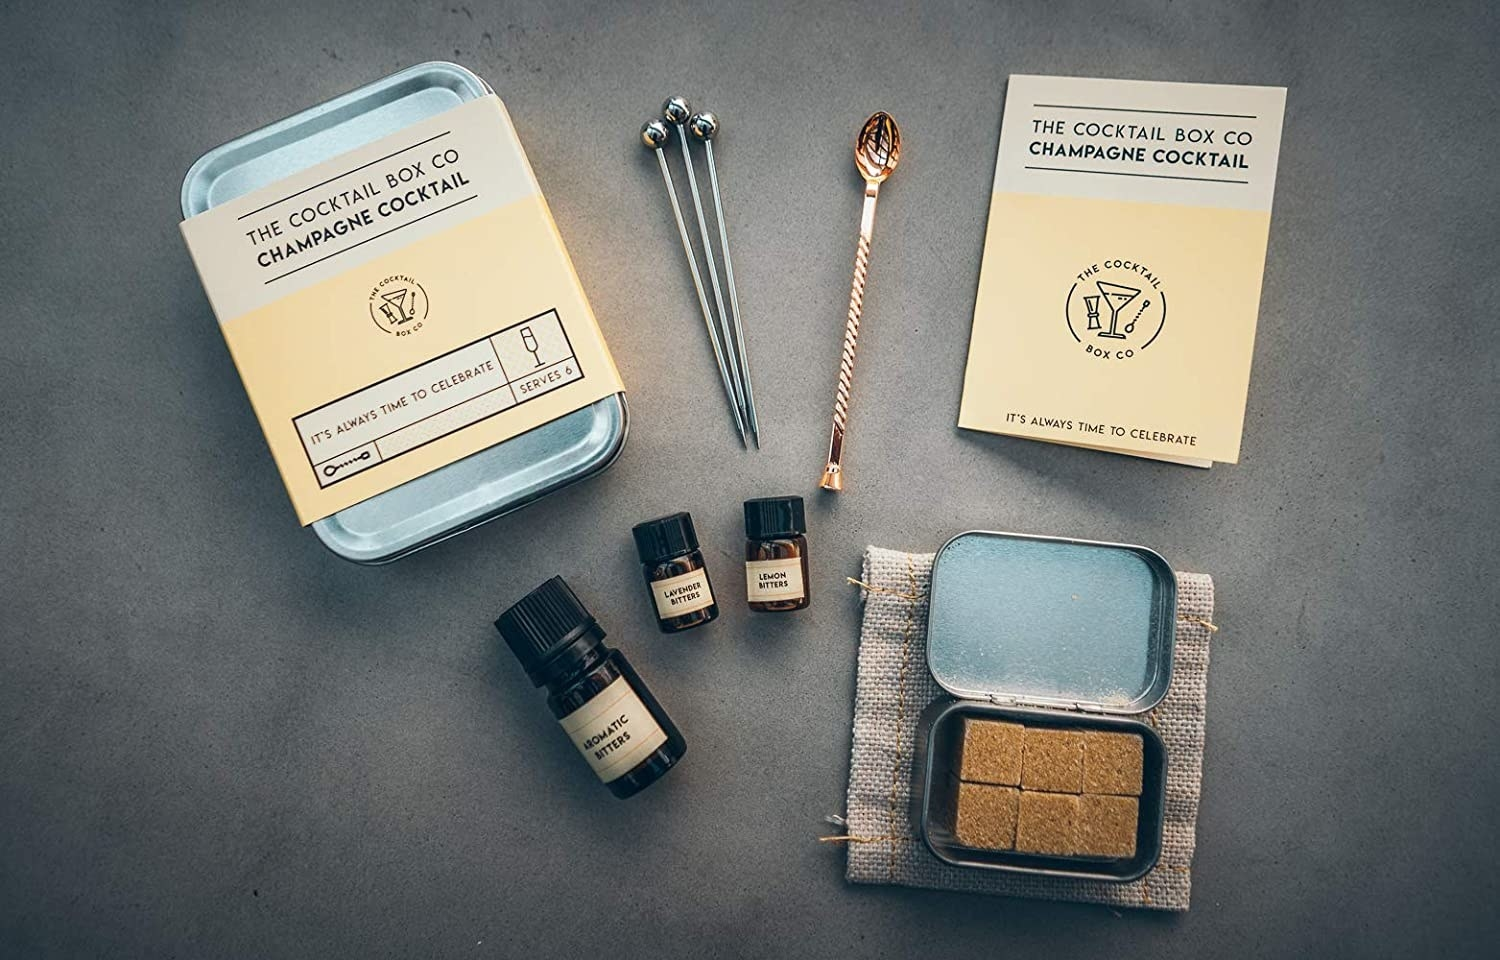 cocktail kit with brown sugar cubes, bitters, a coaster, and stirring spoons.